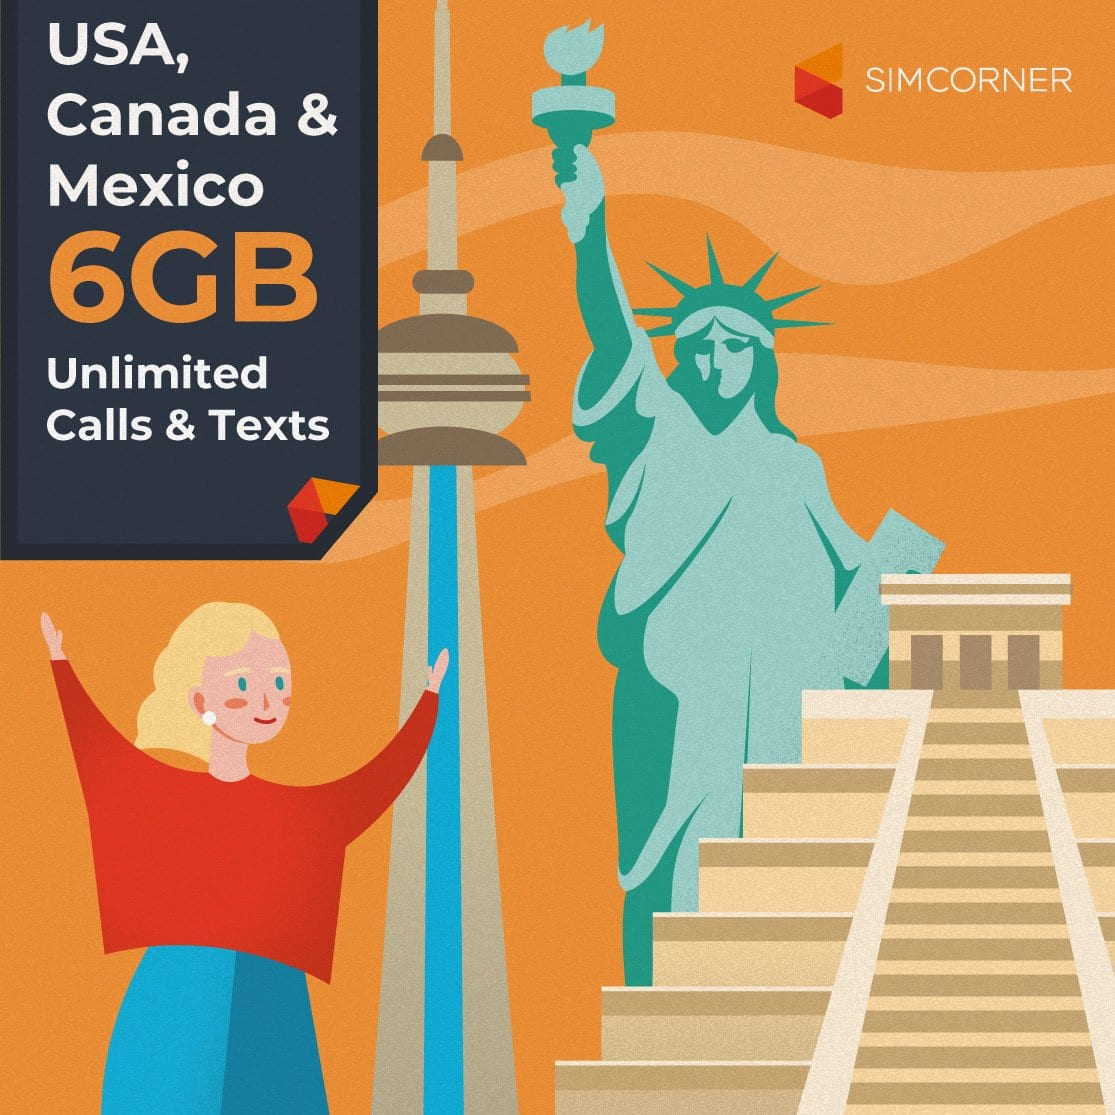 usa-canada-mexico-6gb-sim-card